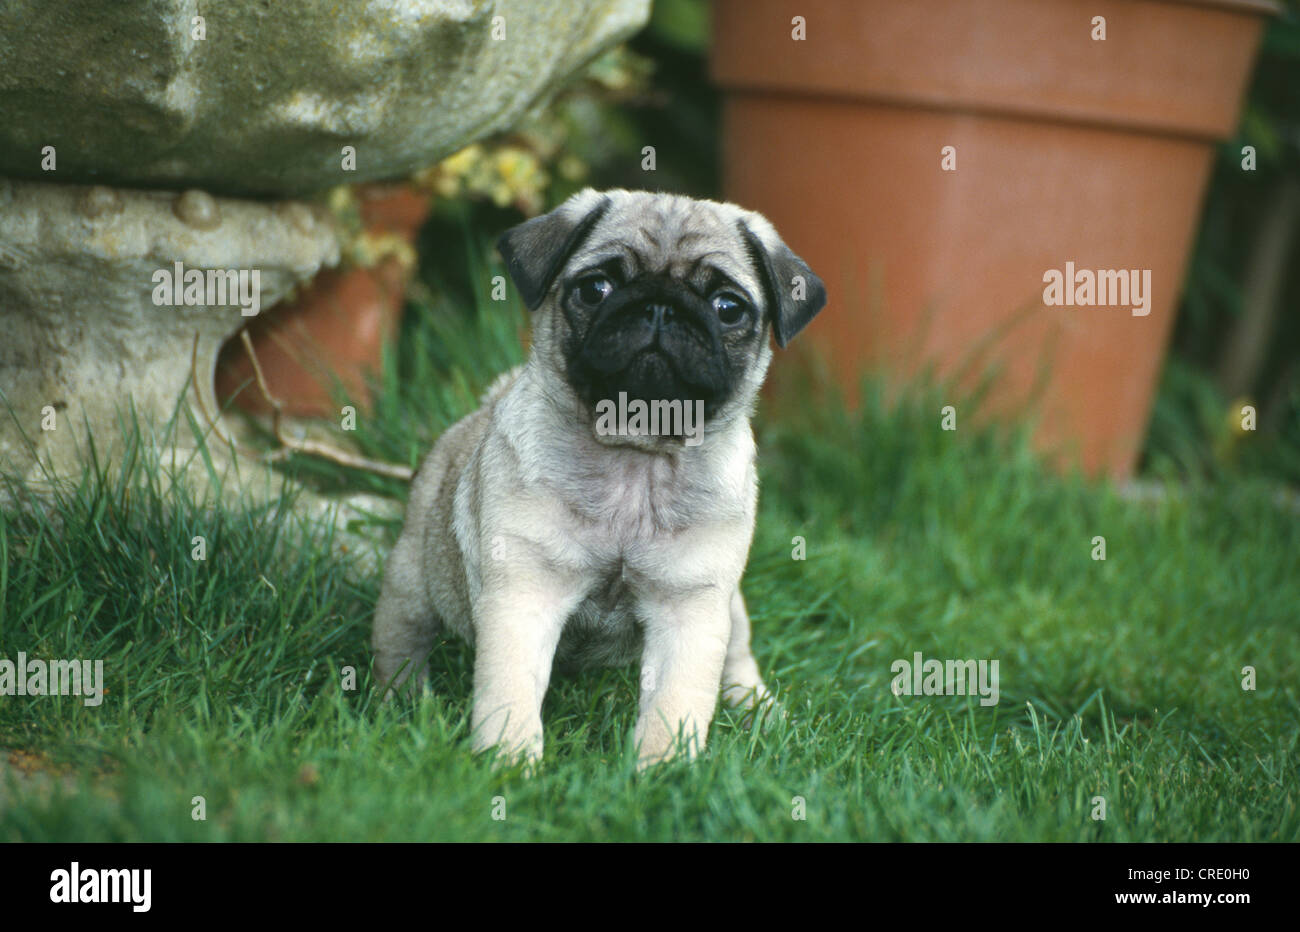 ADORABLE PUG PUPPY SITTING IN YARD - Stock Image